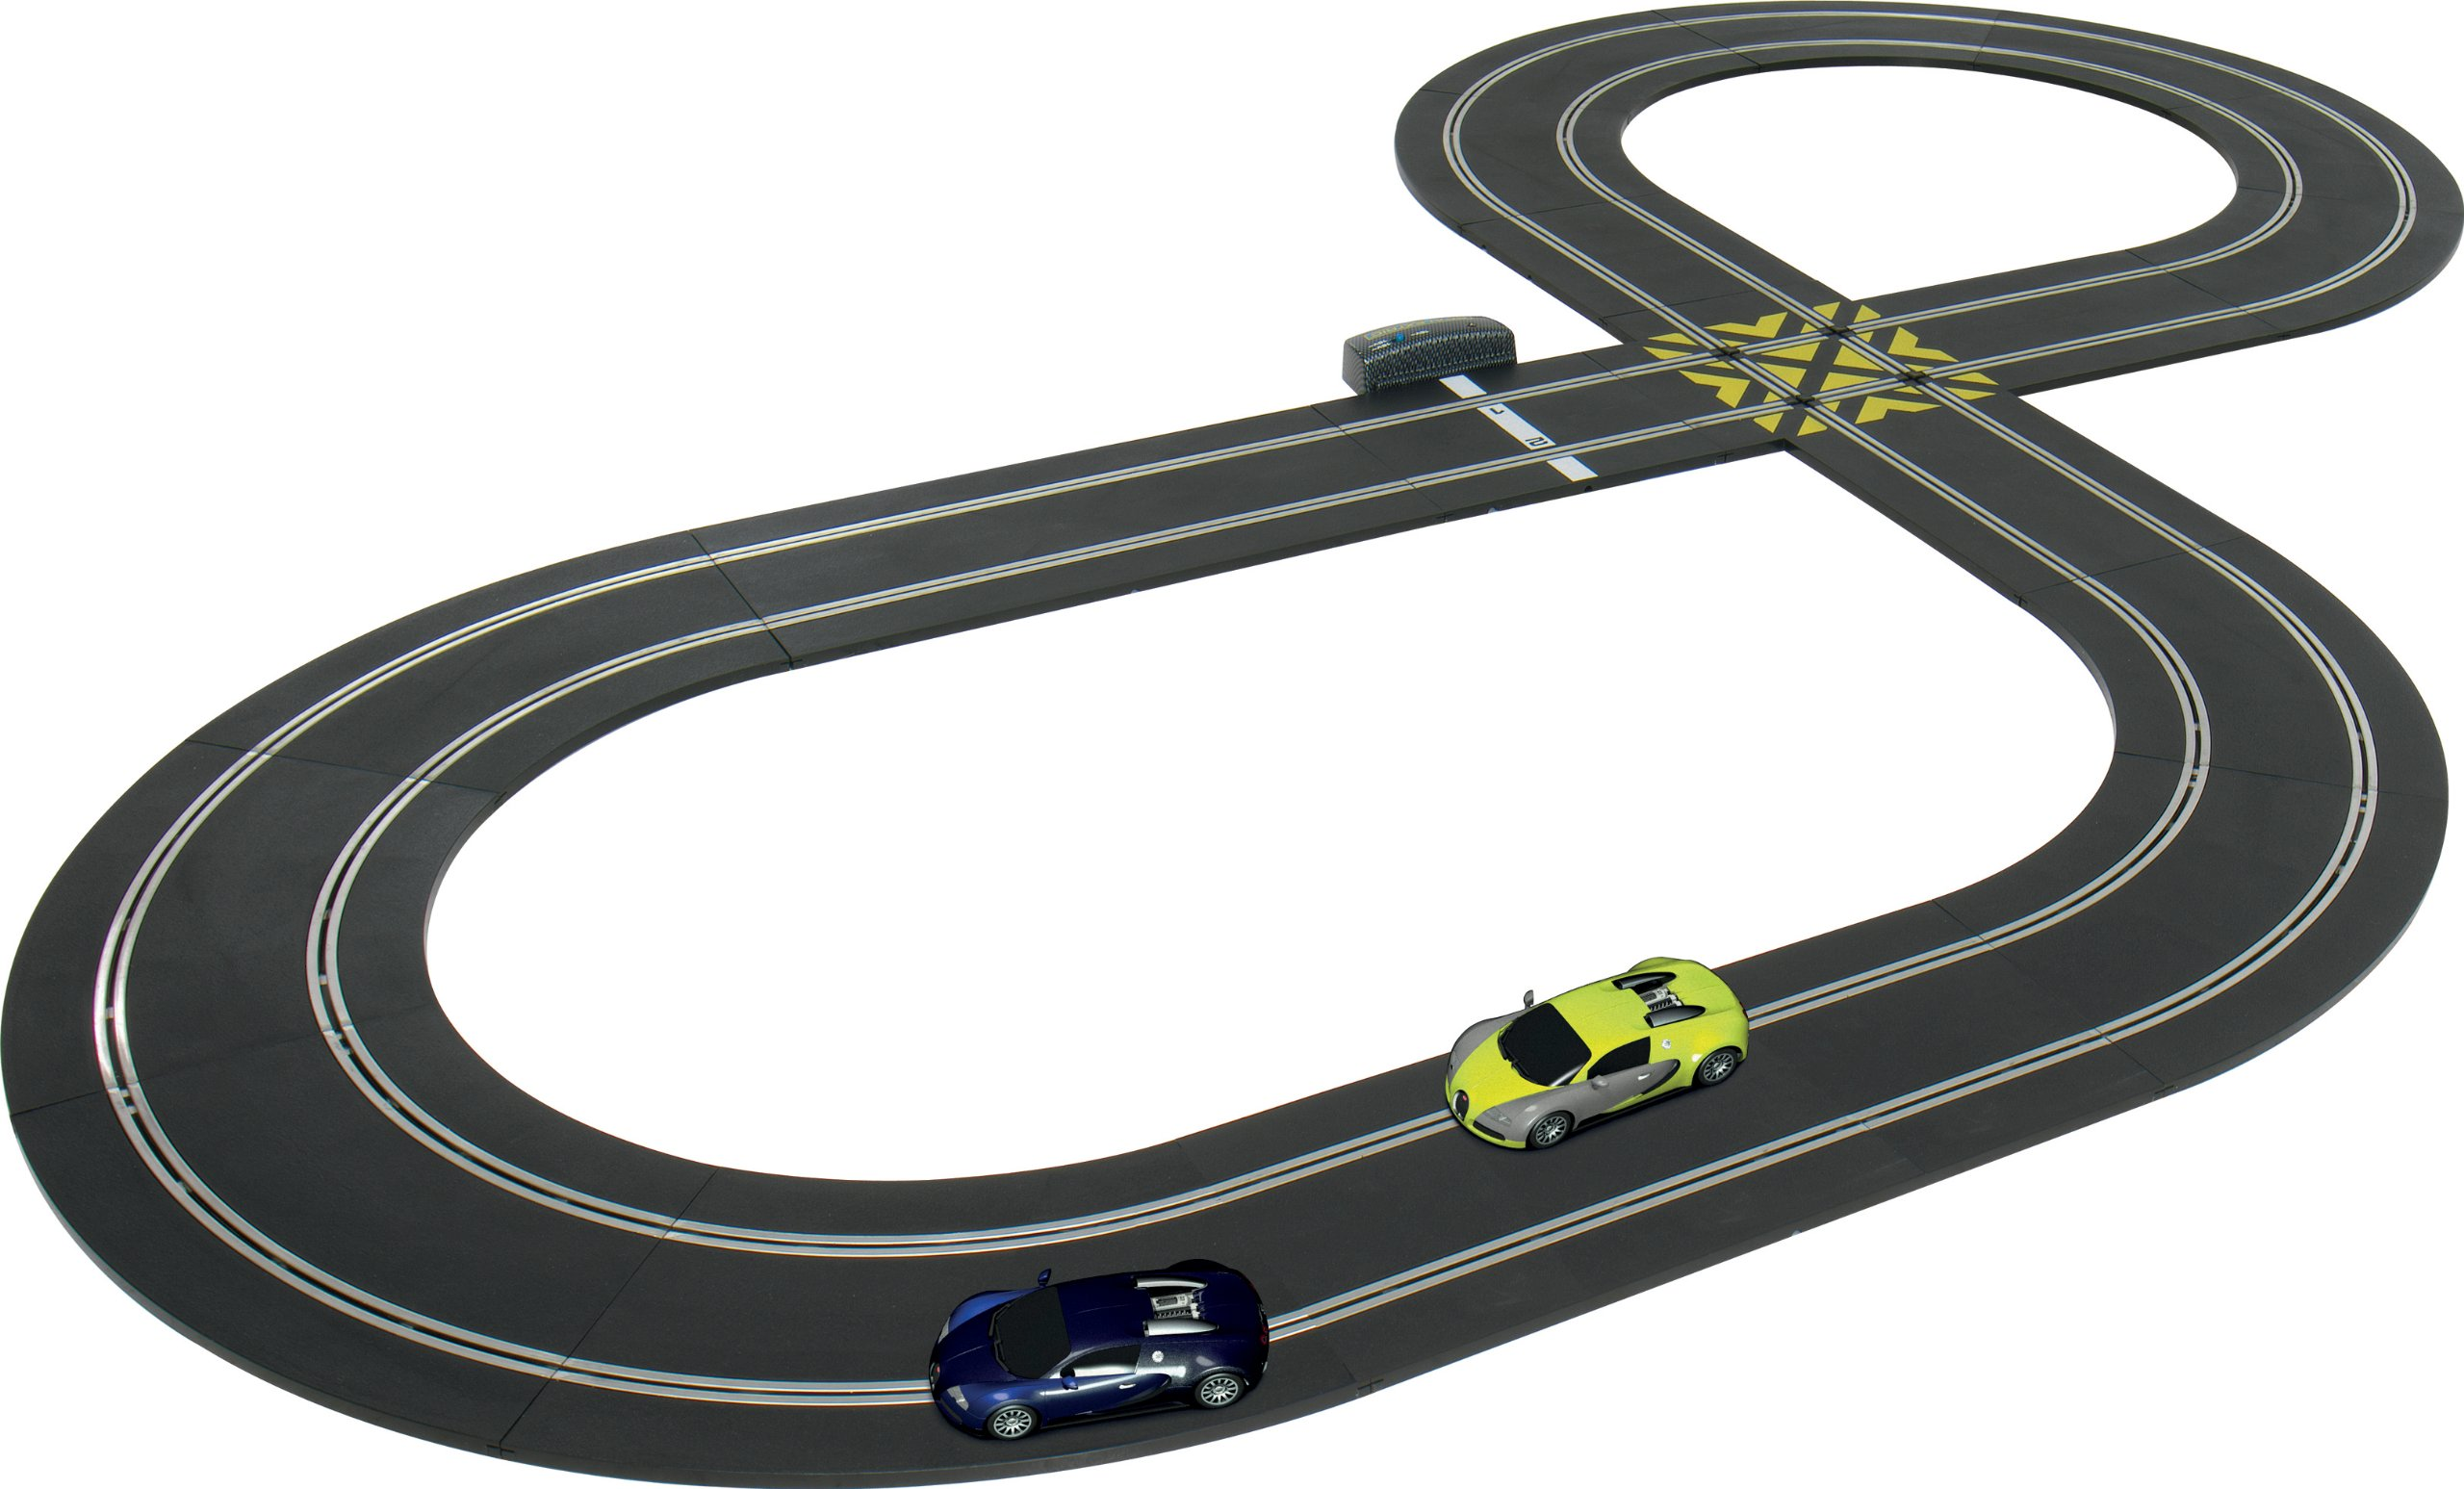 Scalextric 1:32 Supercar Race Set (C1297T) by Scalextric (Image #1)